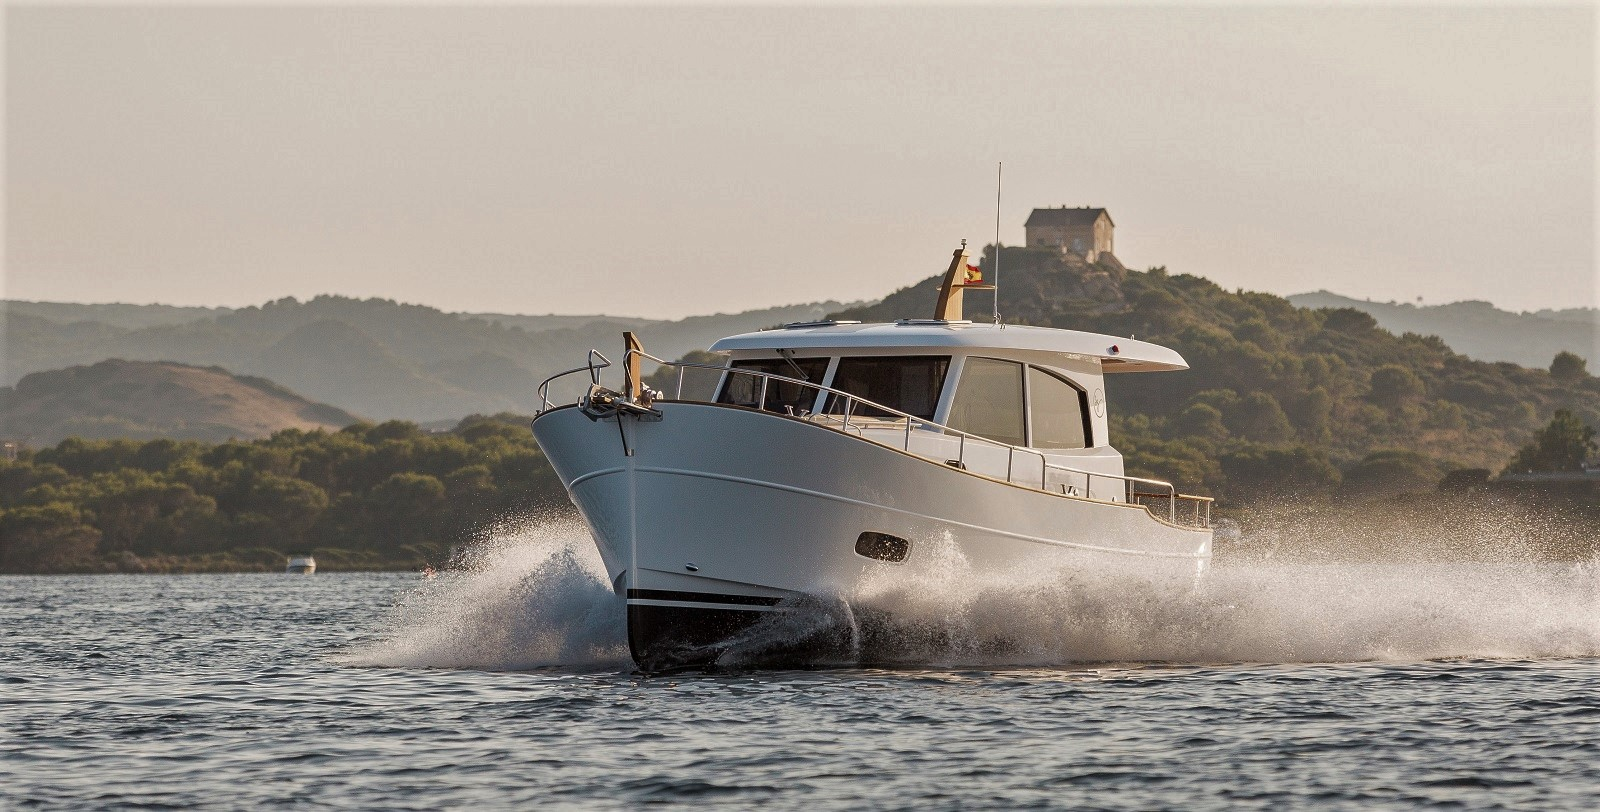 Minorca Yachts for sale - classic luxury motoryachts from Menorca Spain